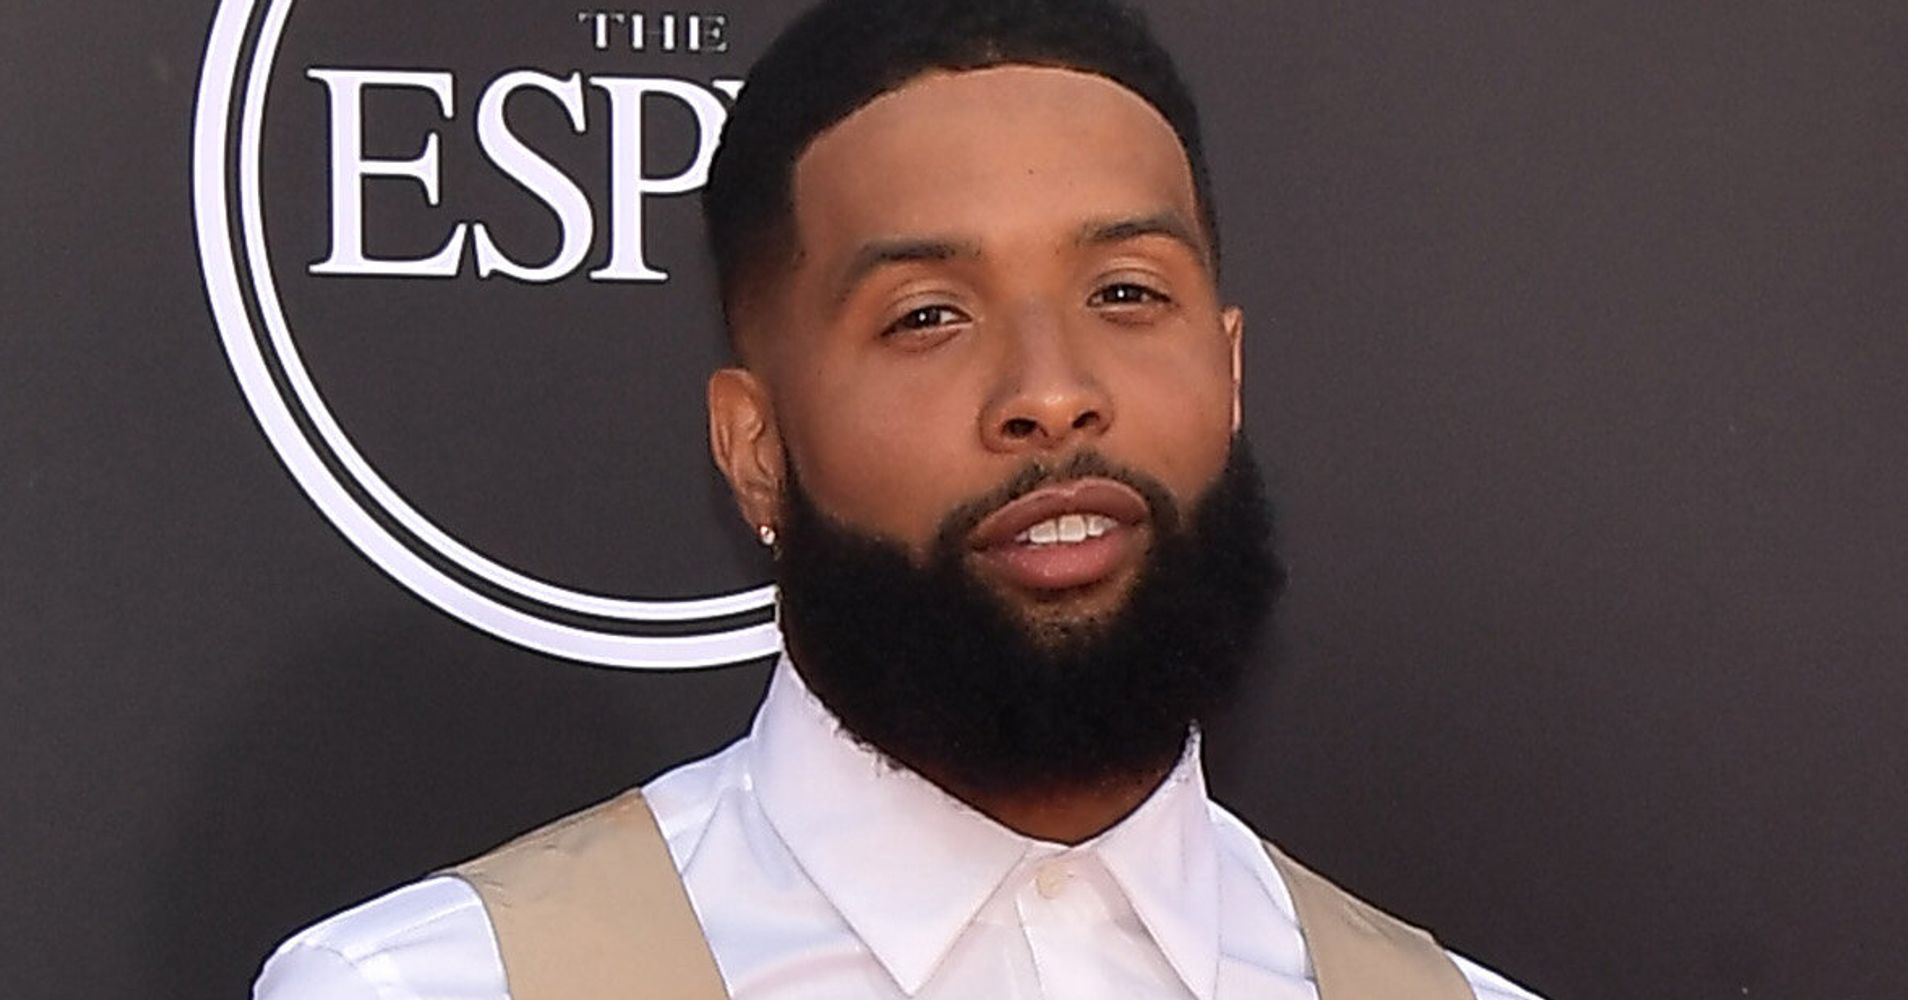 Westlake Legal Group 5d269e482400009d179352d9 Odell Beckham Sports A New Look At The ESPYs, And Twitter Users Are Confused